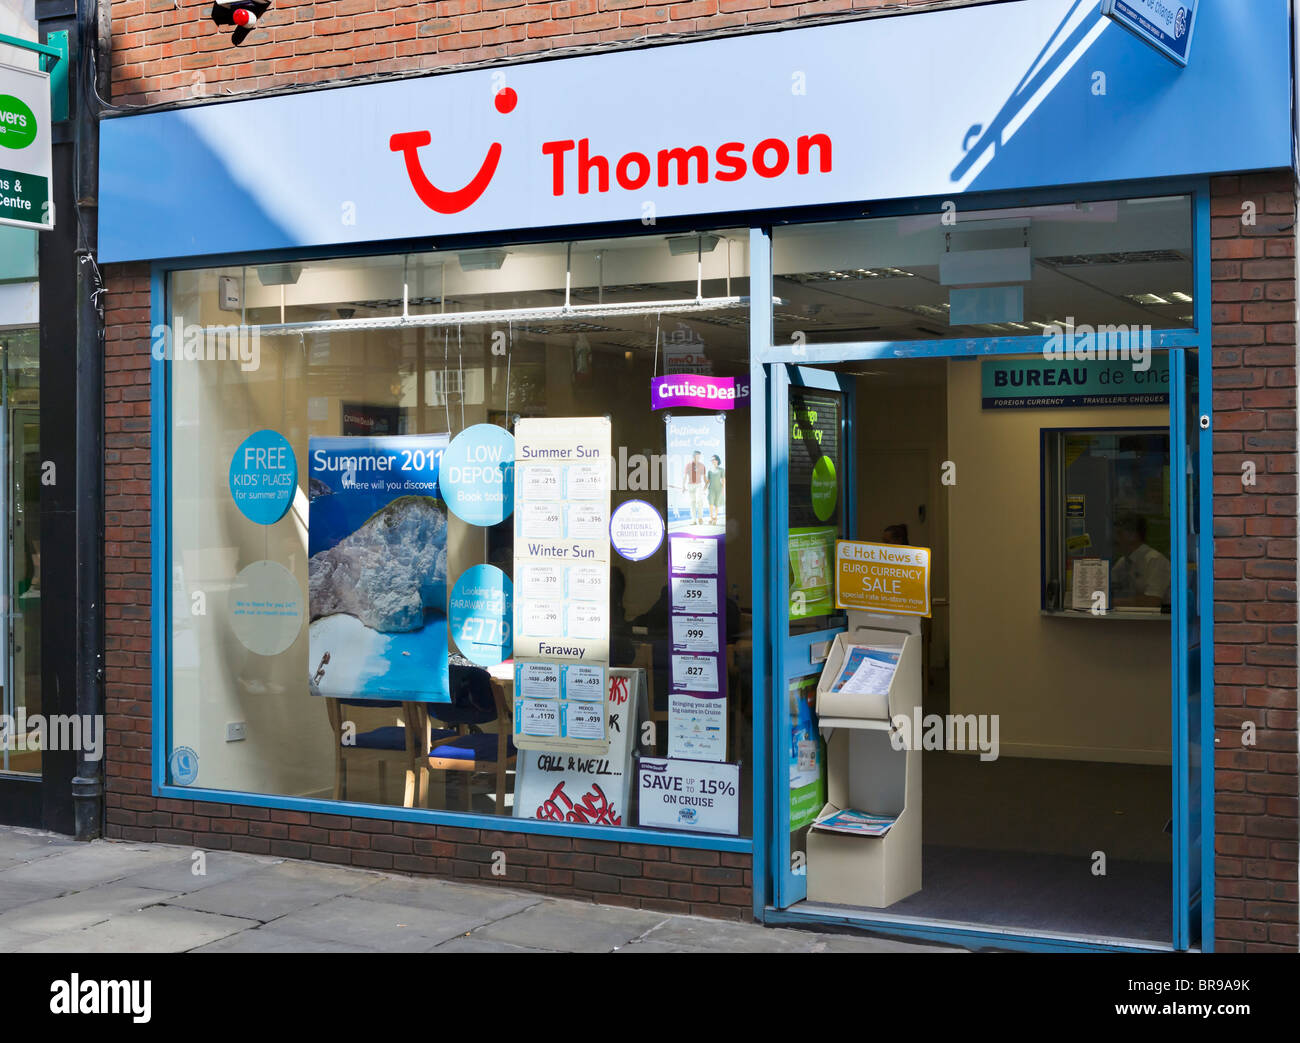 Thomson high street travel agency in Chester town centre, Cheshire, England, UK - Stock Image